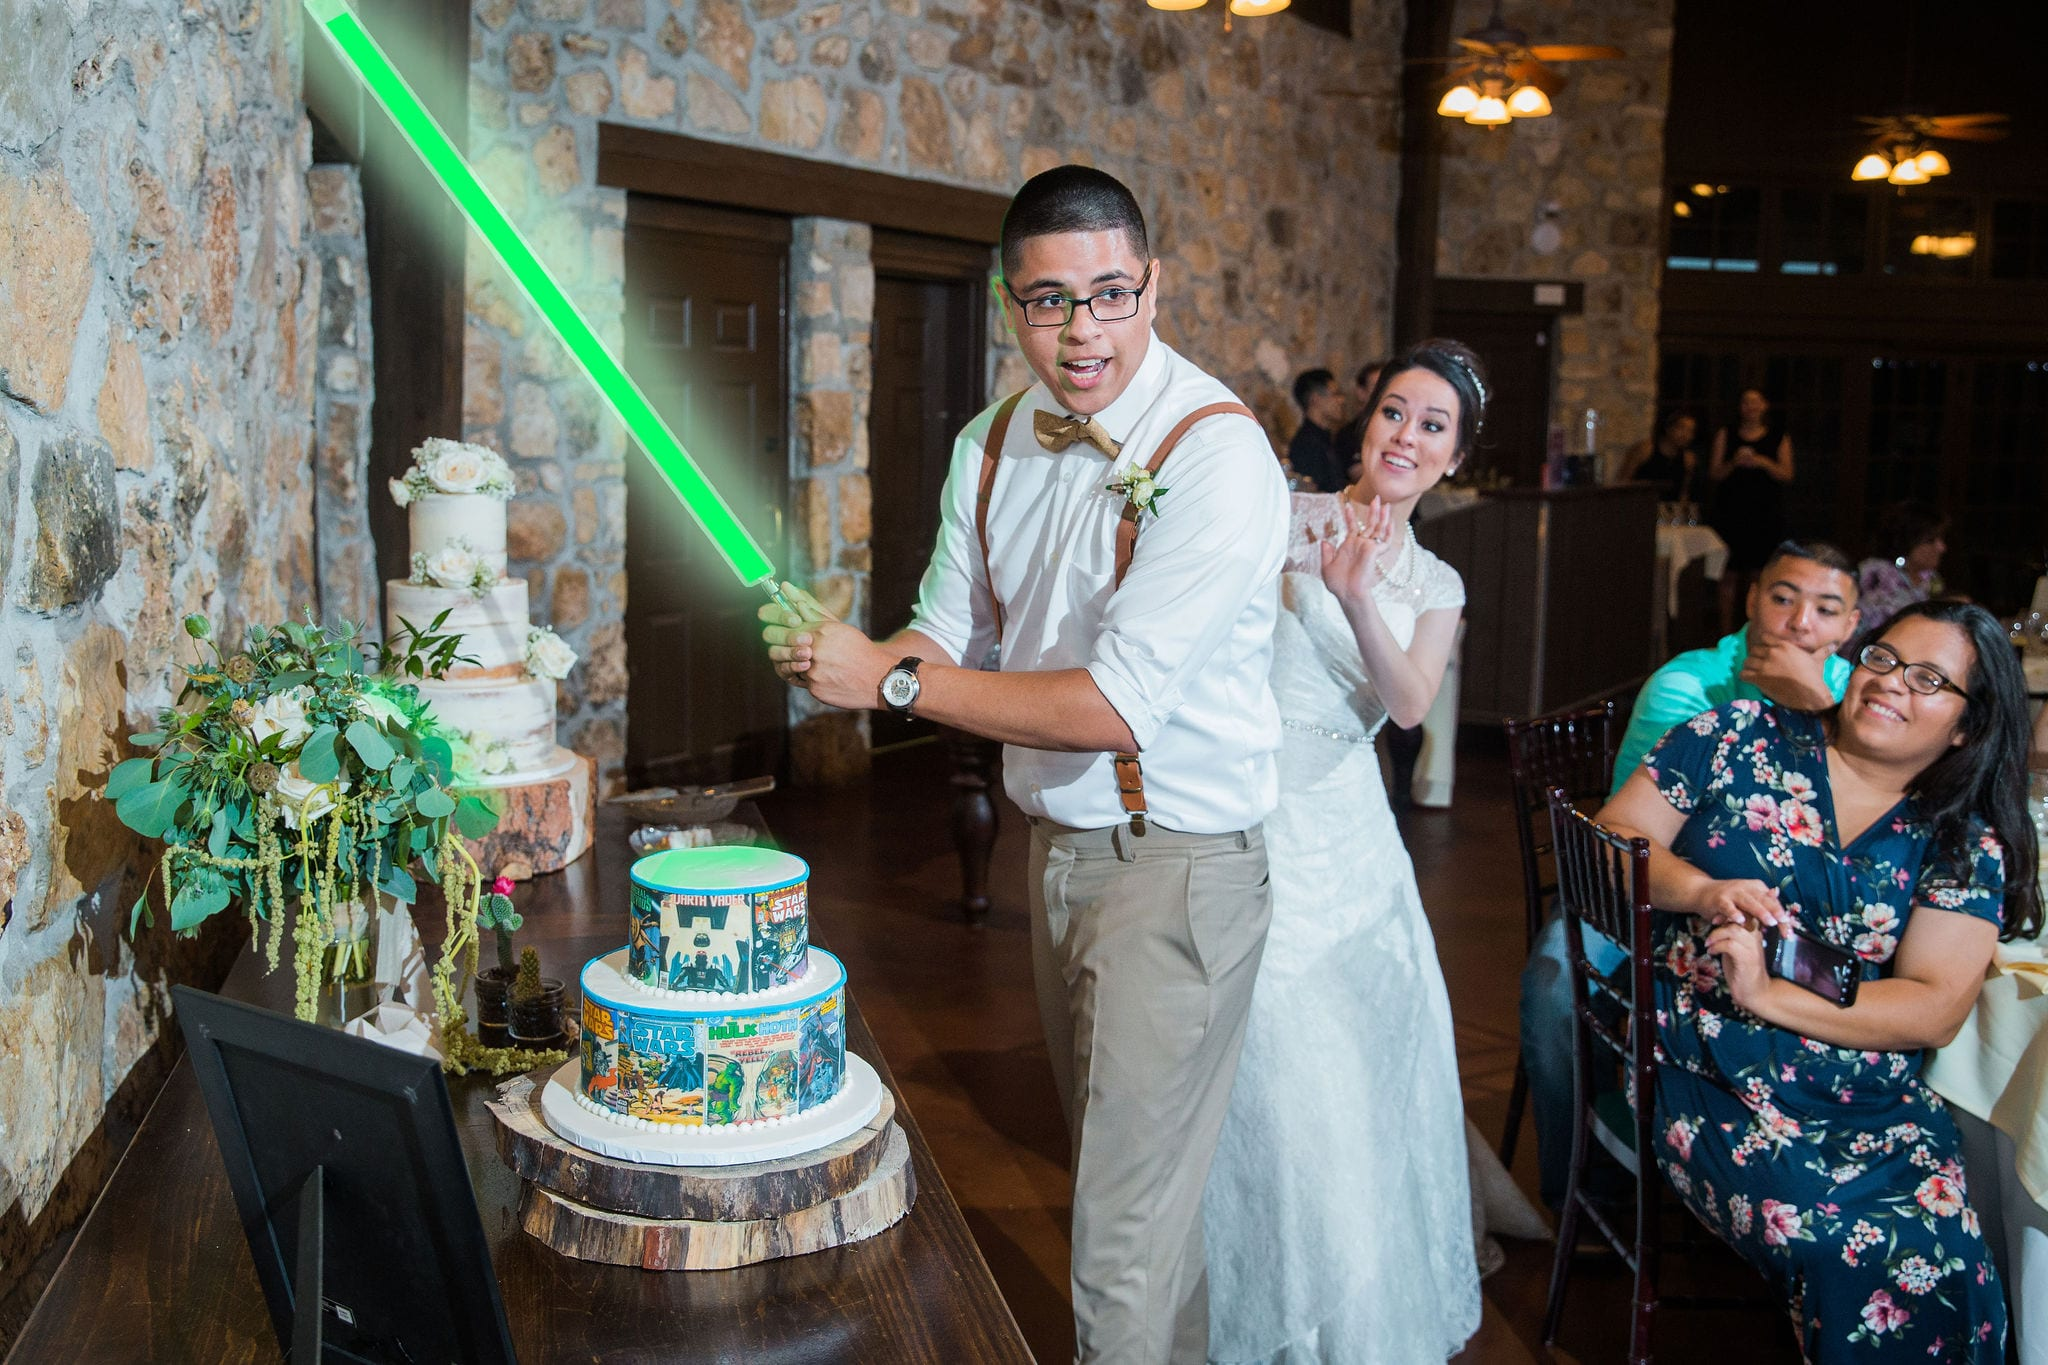 Aamber wedding Canyon Springs Golf Course light sabor cake cutting